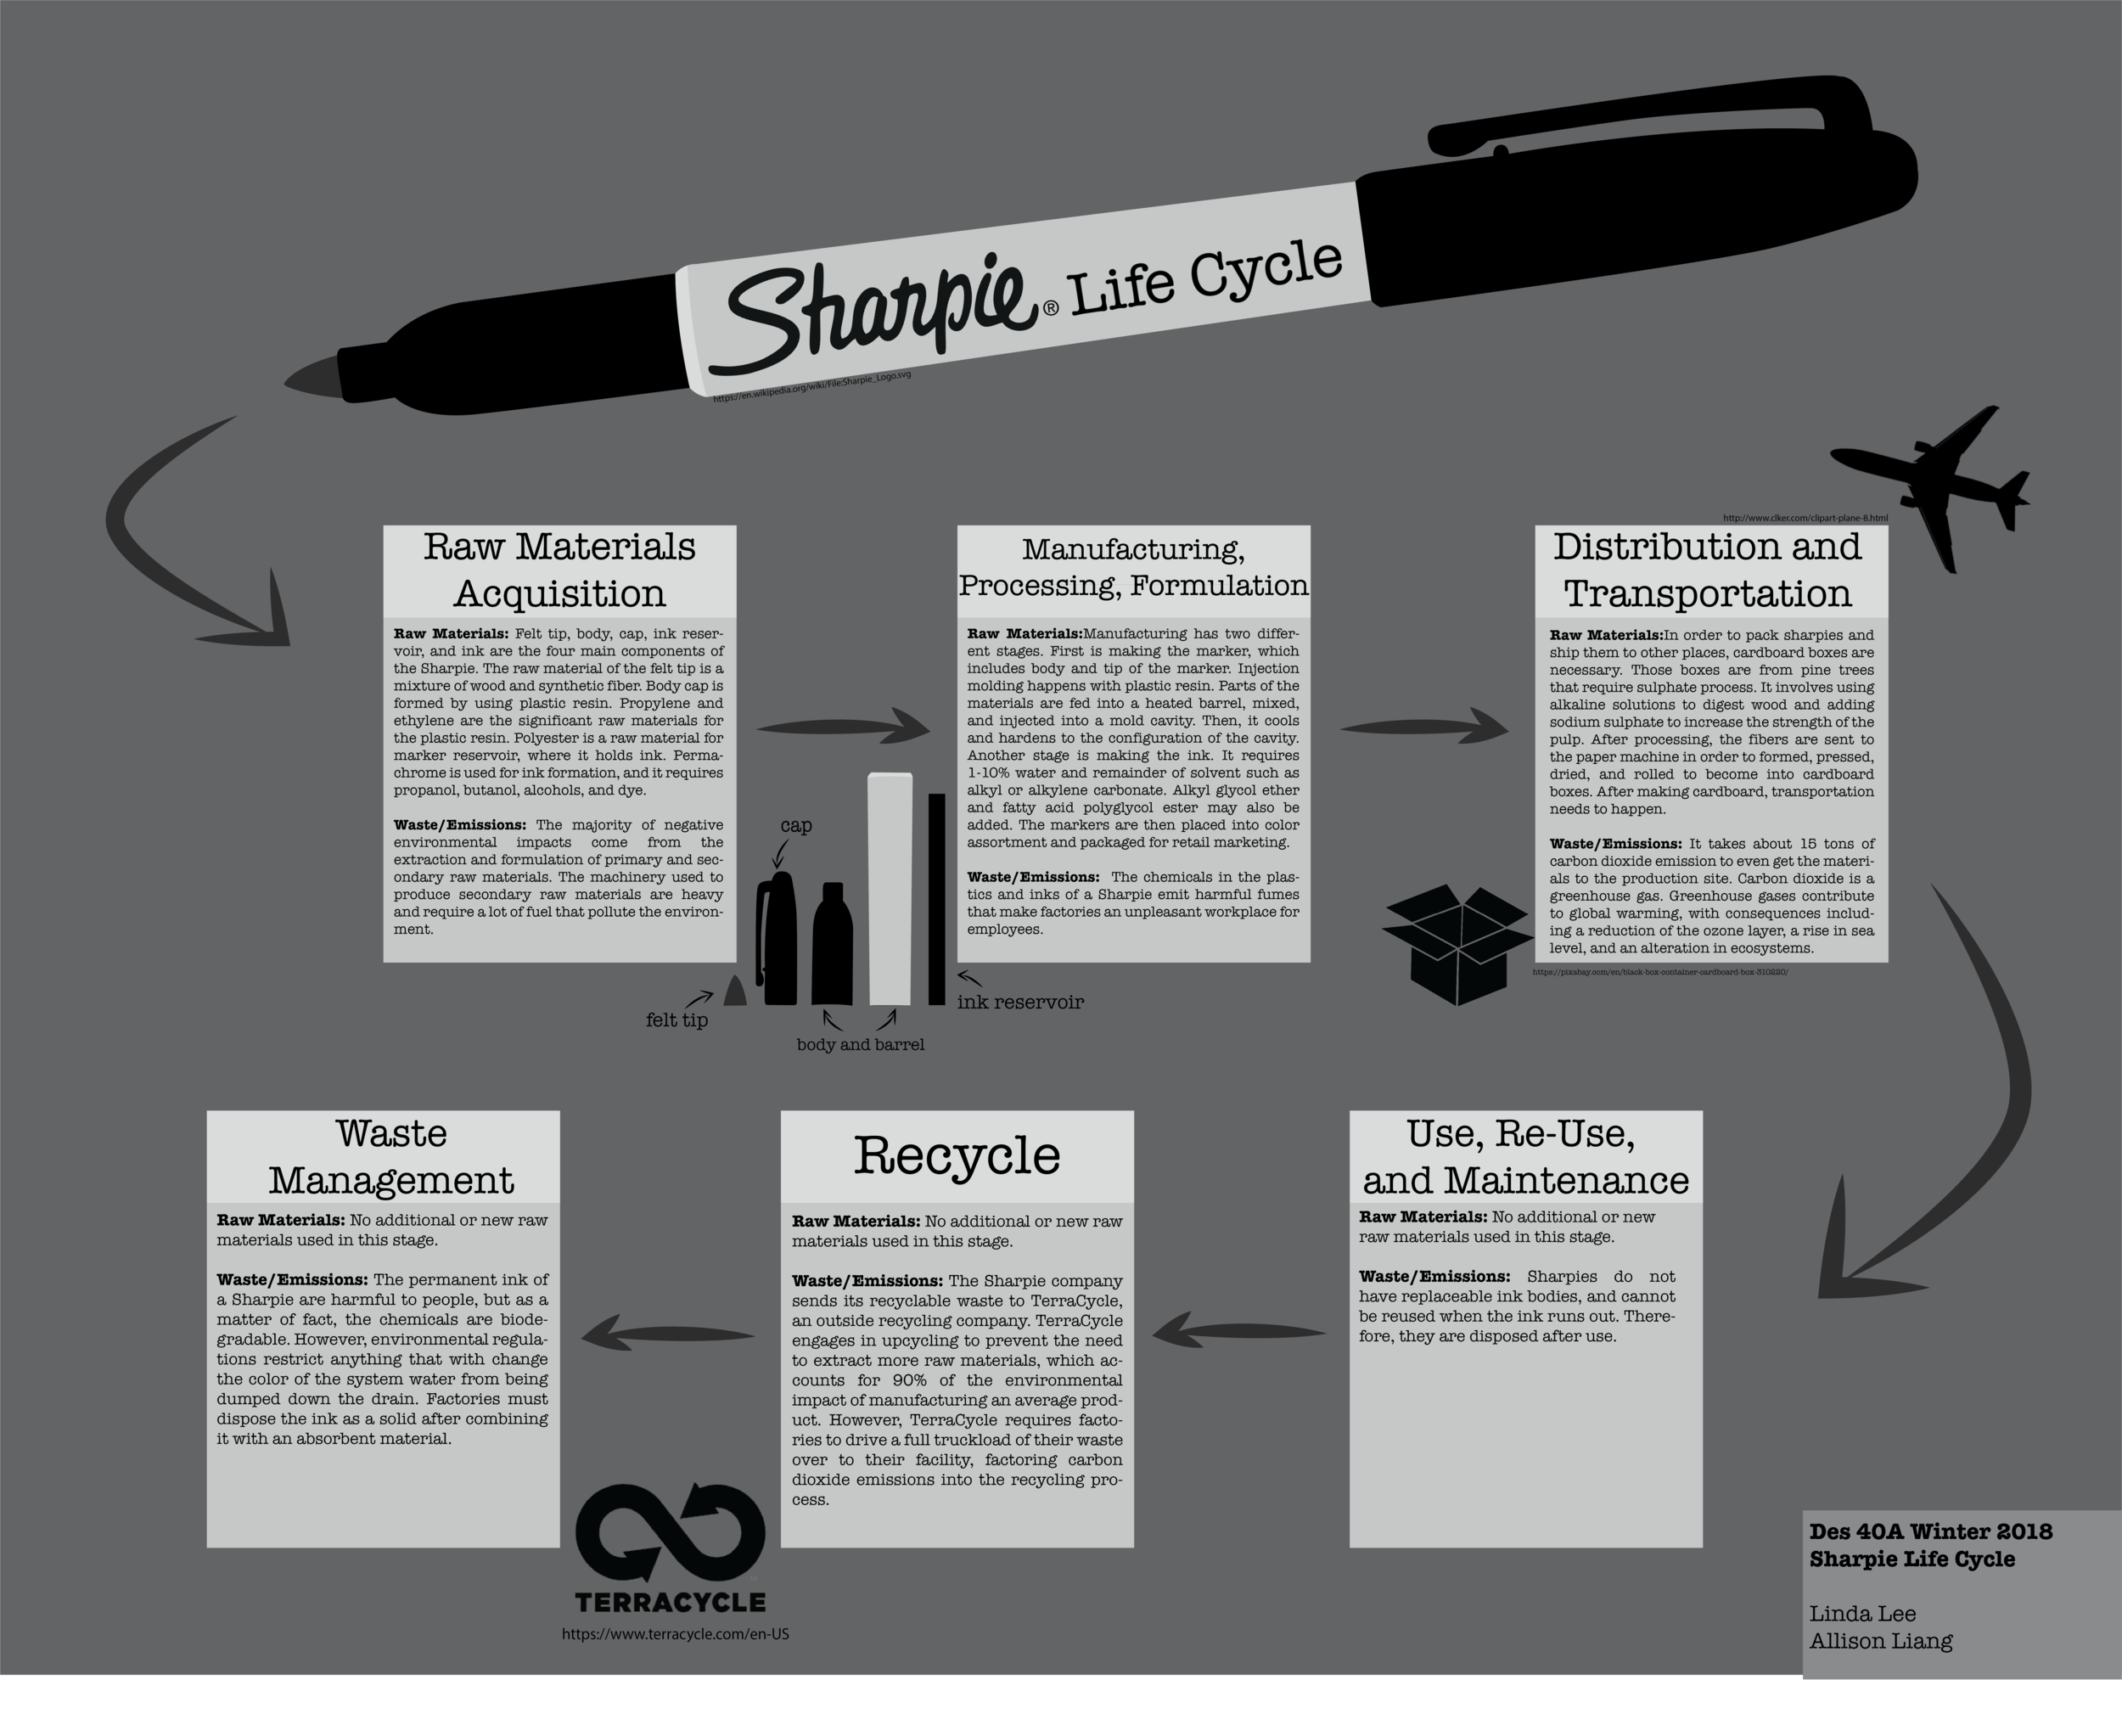 Sharpie Life Cycle